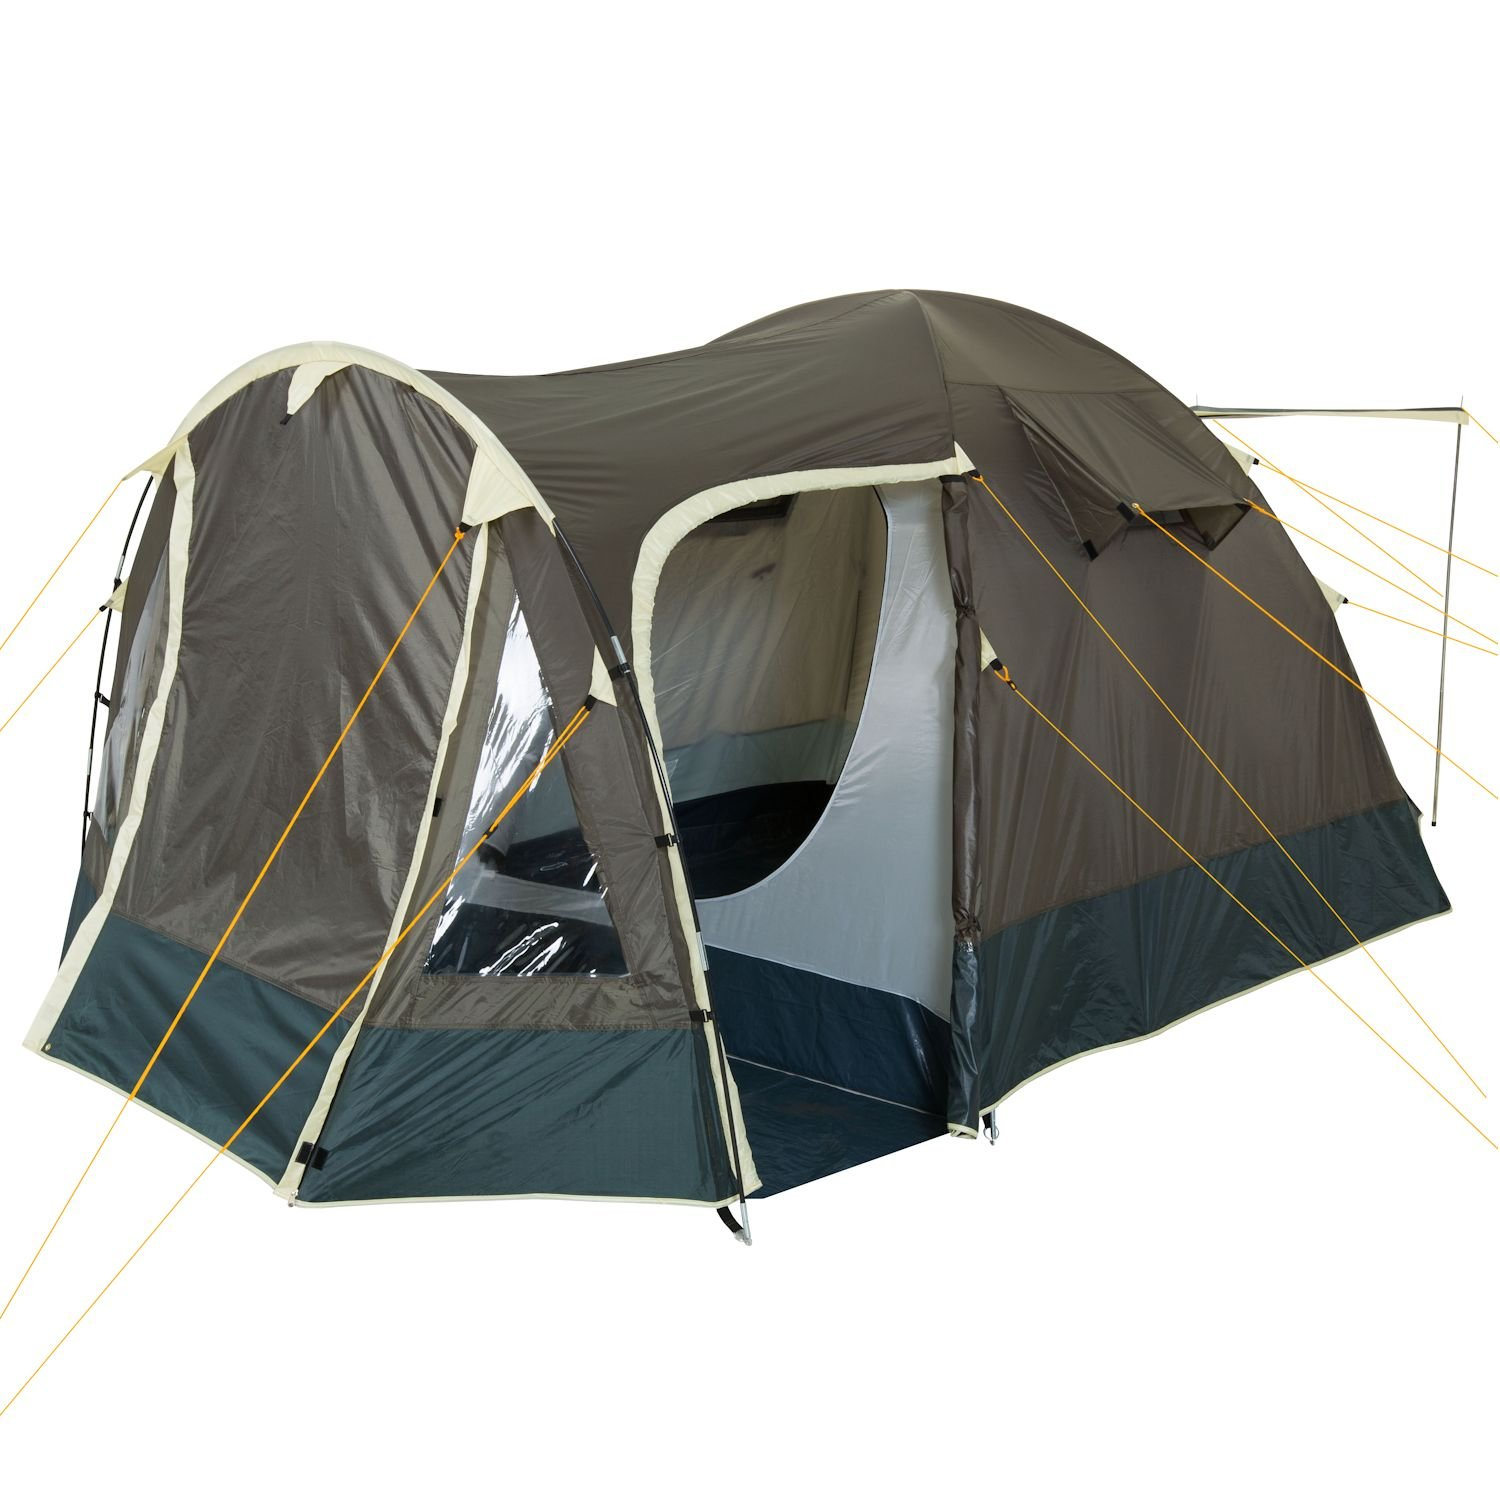 C&Feuer - Igloo/Dome-Tent with Porch 3-4 Persons khaki / dark green Amazon.co.uk Sports u0026 Outdoors  sc 1 st  Amazon UK & CampFeuer - Igloo/Dome-Tent with Porch 3-4 Persons khaki / dark ...